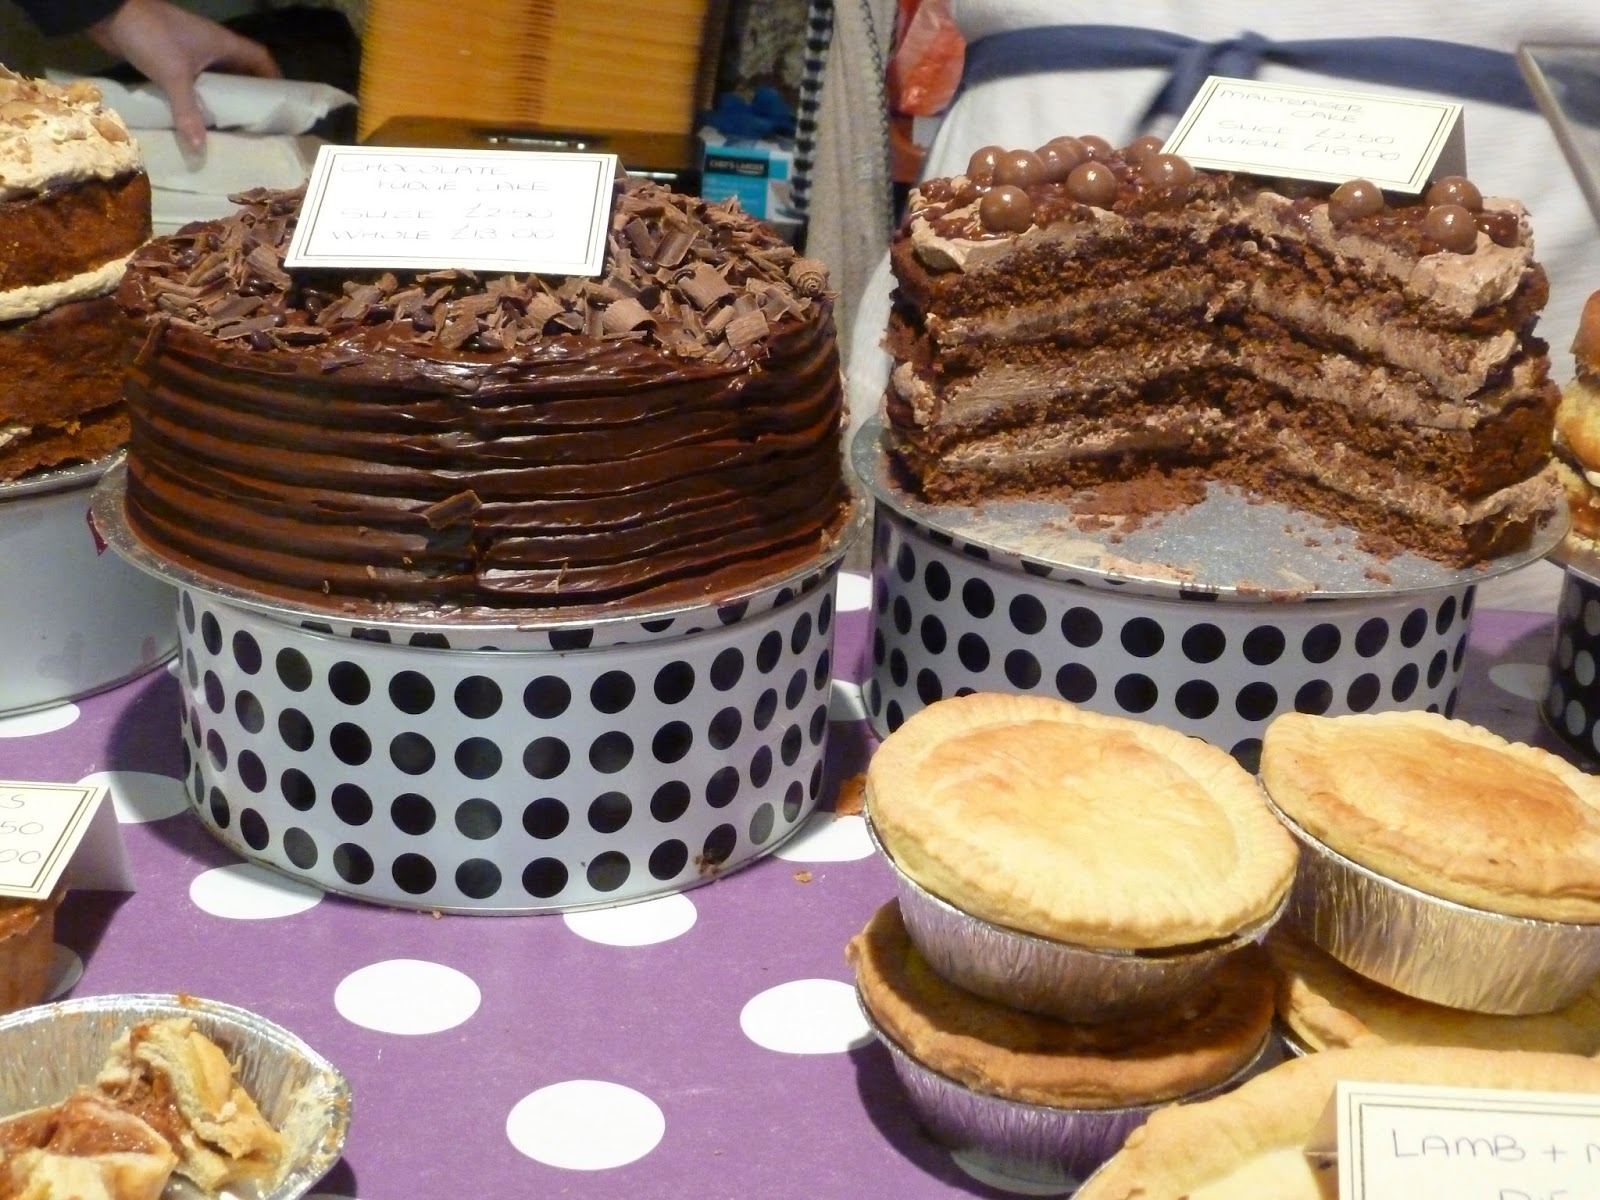 Farmers market stall cakes, pies and maltesers cake